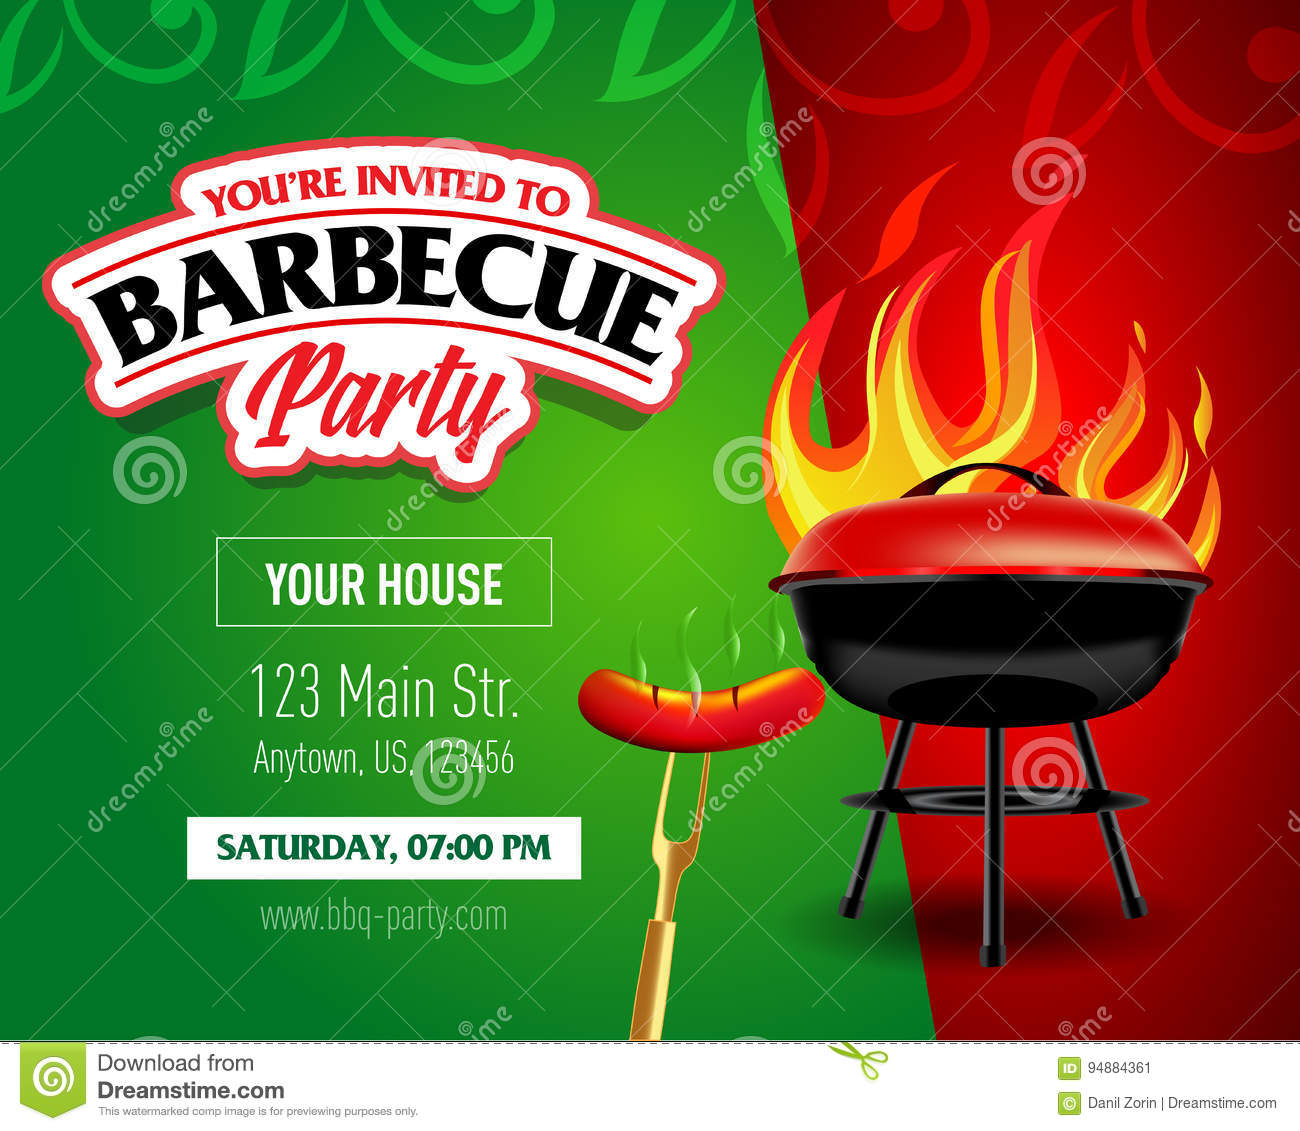 barbecue party design barbecue invitation barbecue logo bbq template menu design barbecue. Black Bedroom Furniture Sets. Home Design Ideas